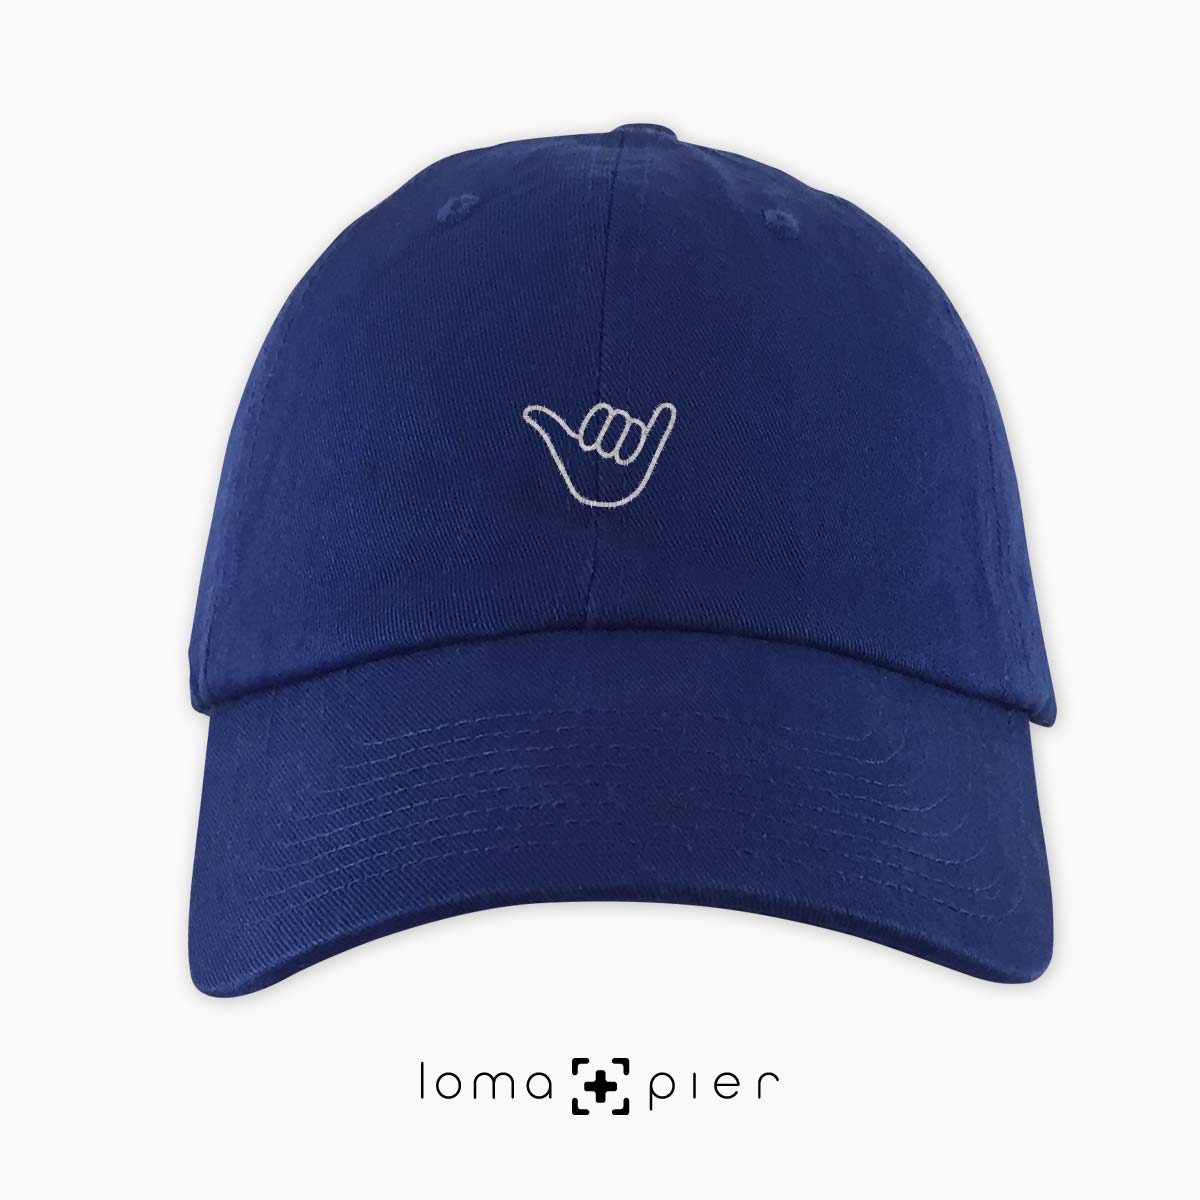 HANG LOOSE icon embroidered on a royal blue unstructured dad hat by loma+pier hat store made in the USA